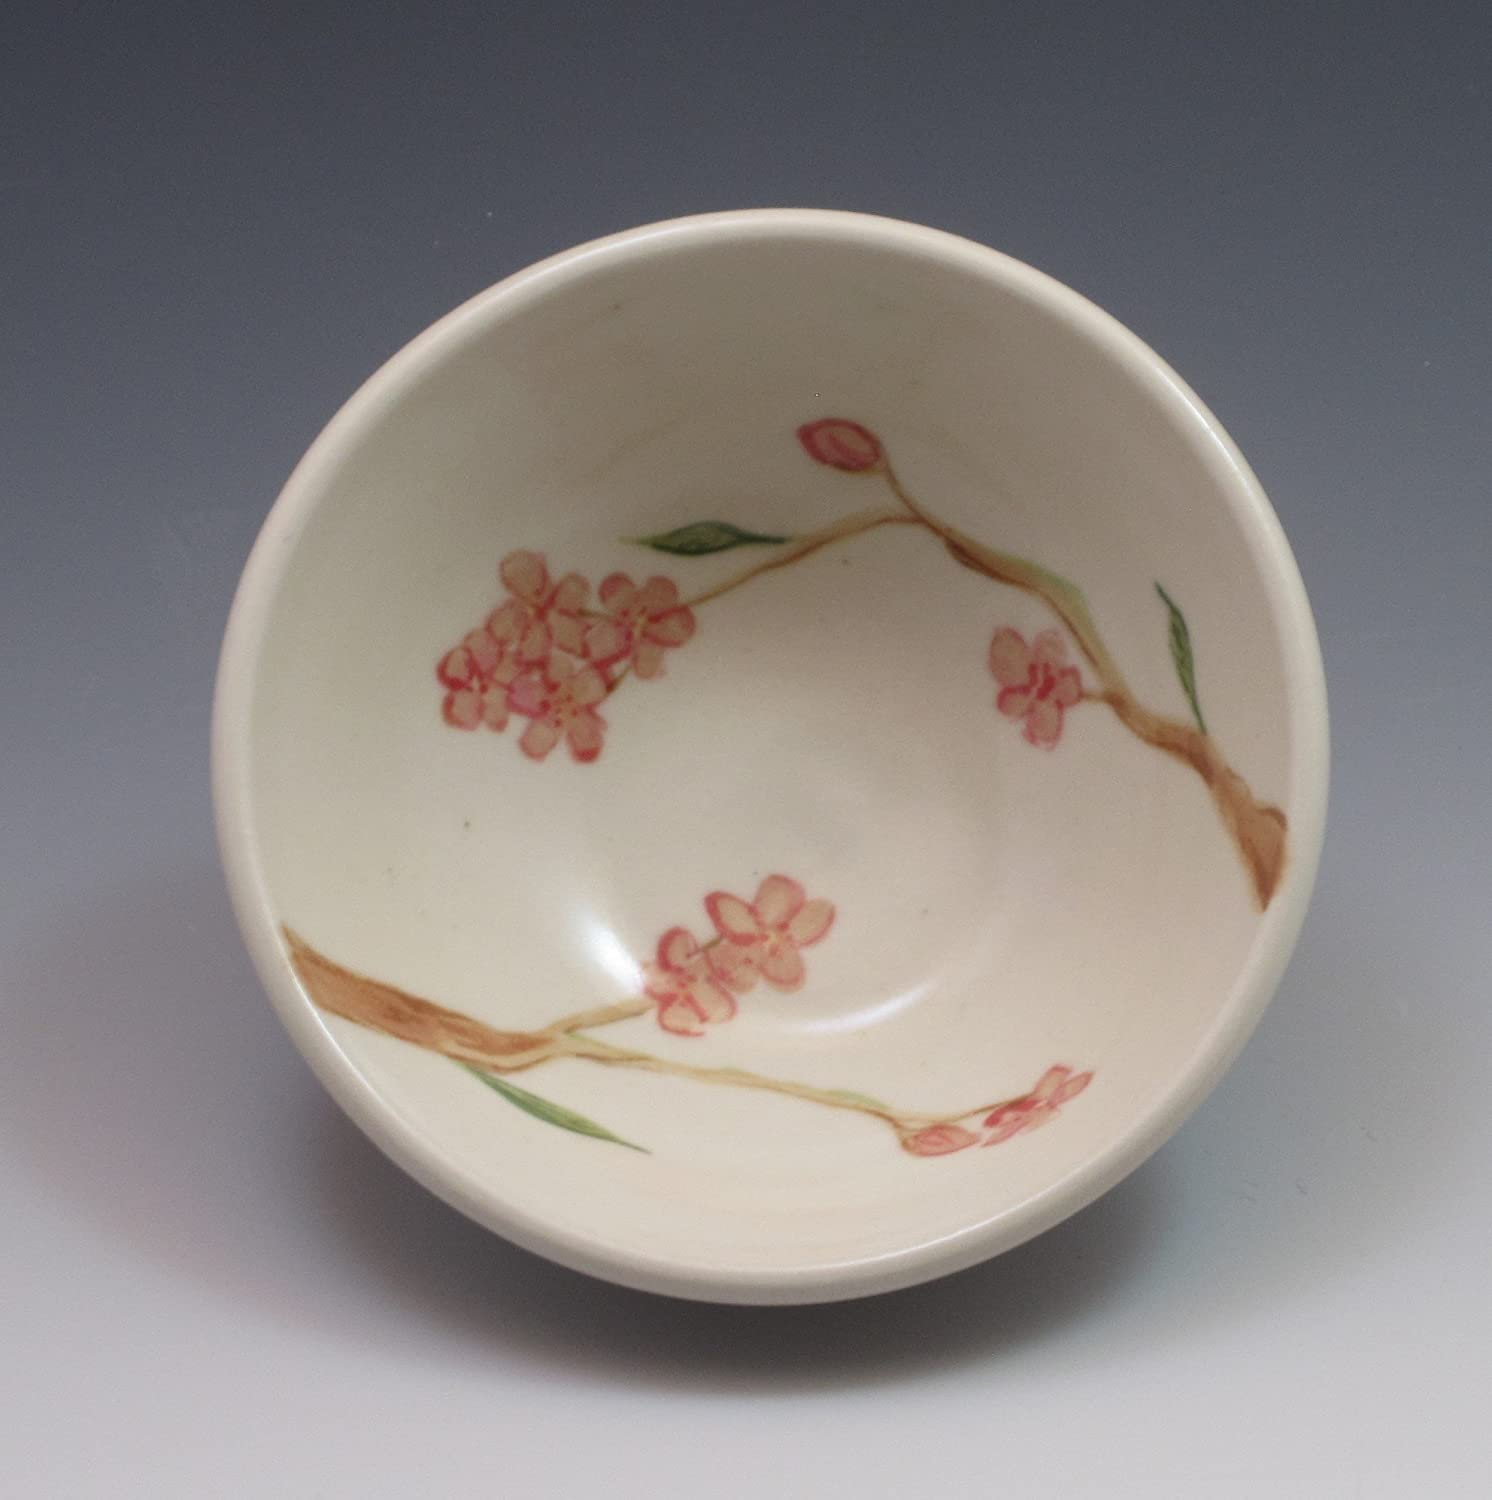 Small porcelain bowl, hand thrown and hand painted in cherry blossom pattern